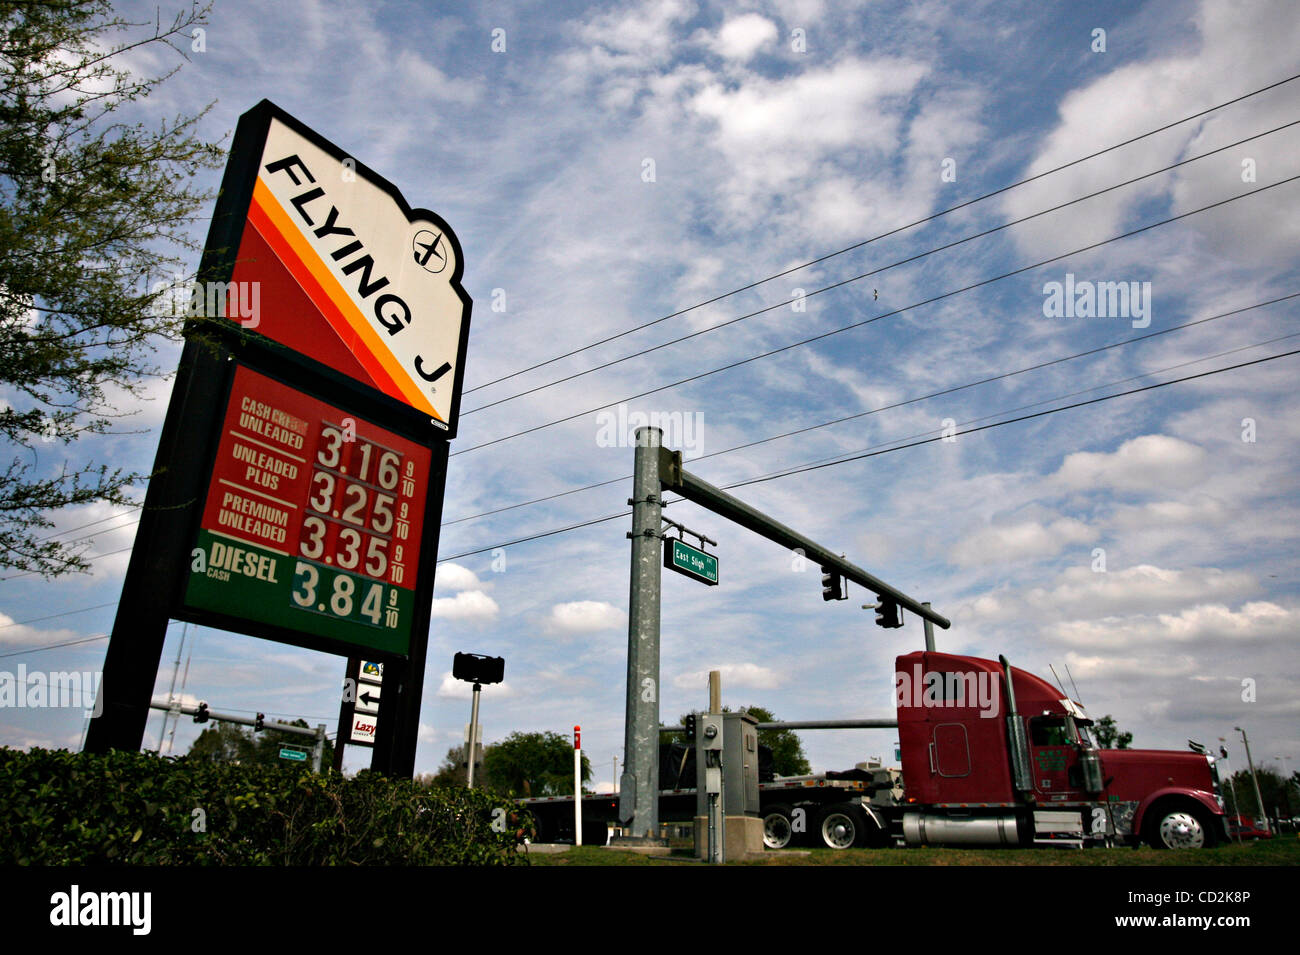 The price of diesel hit $3.84 at the Flying J Truck Stop along S.R. 579 in Seffner on Monday afternoon (3/9/08). - Stock Image